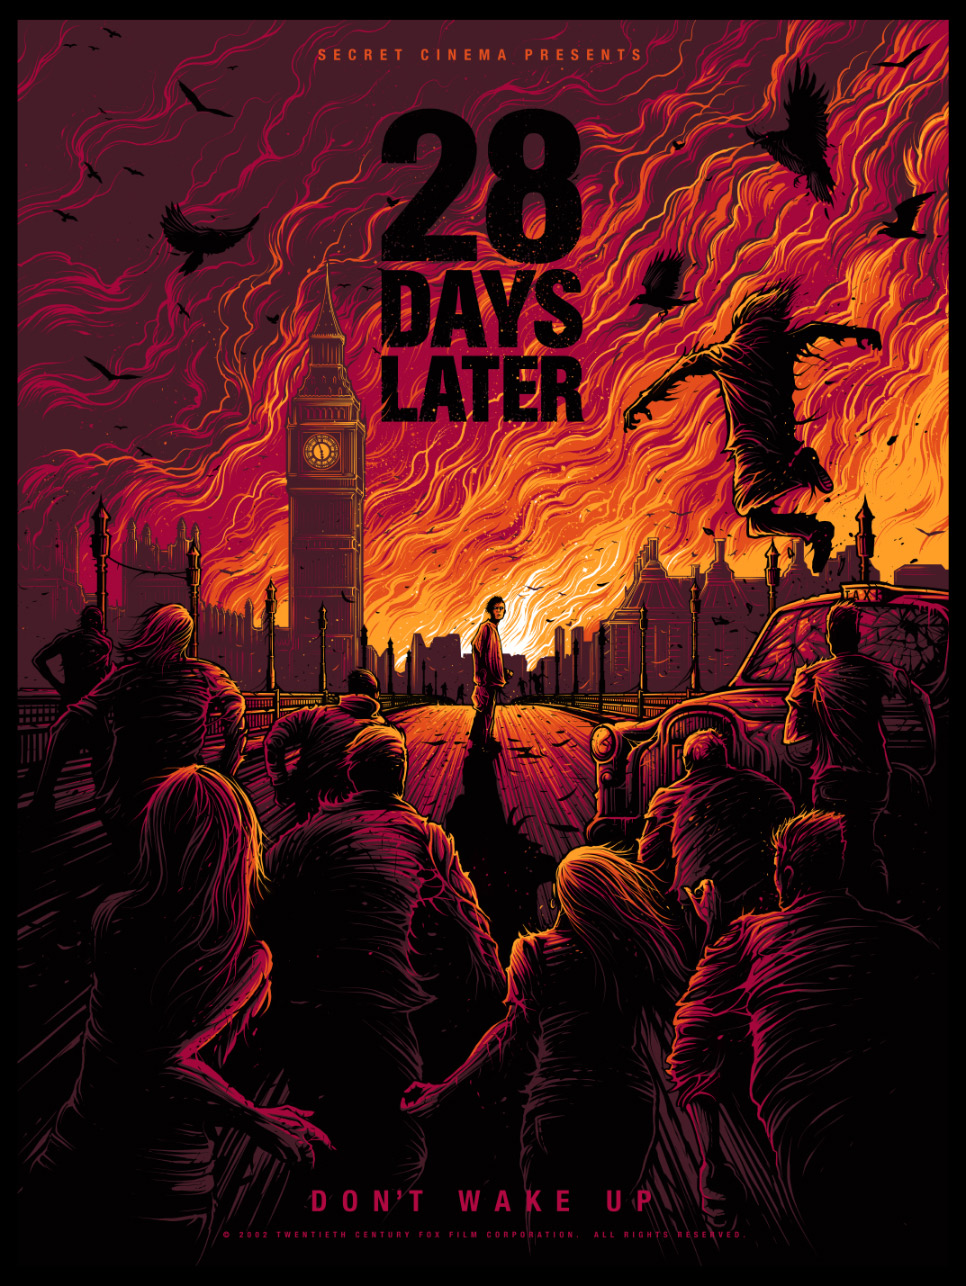 Take a Look at Dan Mumford's Rage Fuelled 28 Days Later Print